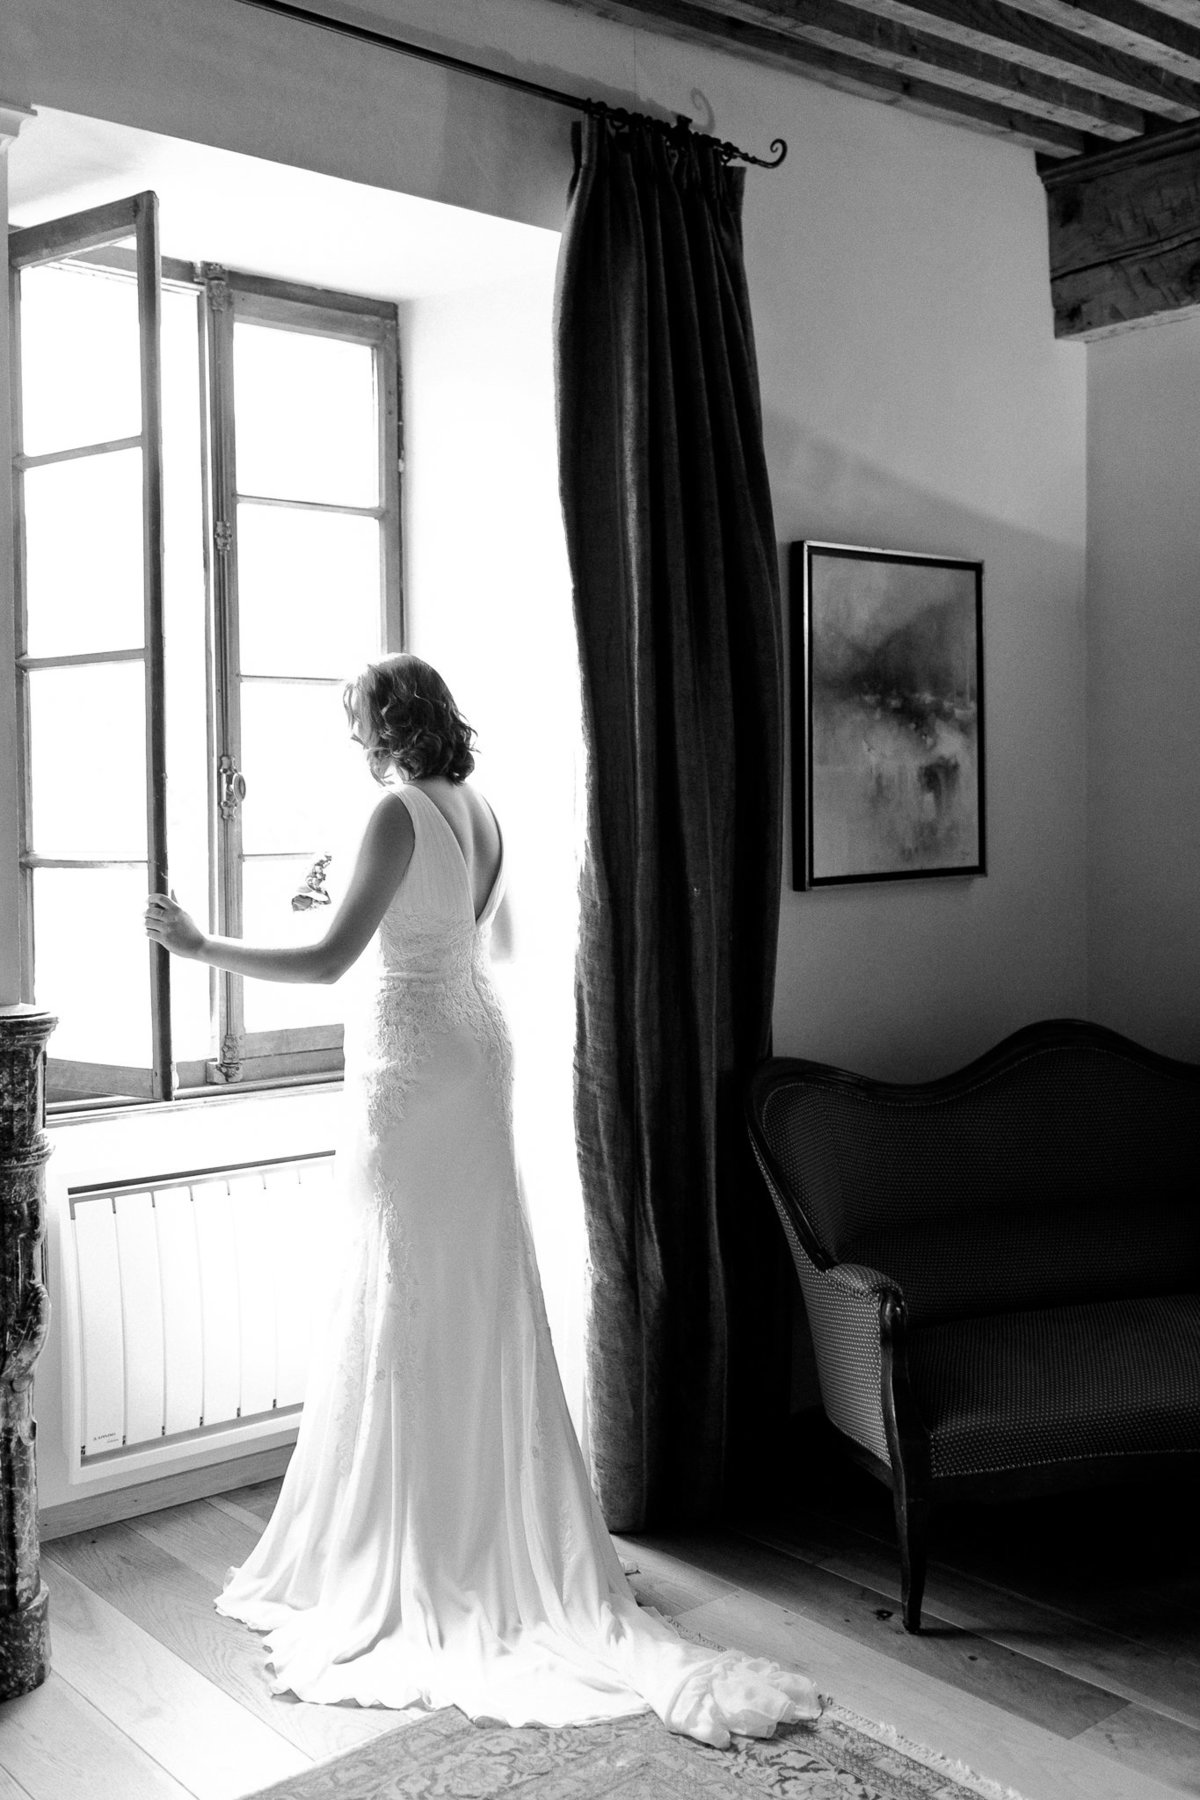 photographe-mariage-talloires-france-lisa-renault-photographie-wedding-destination-photographer-31